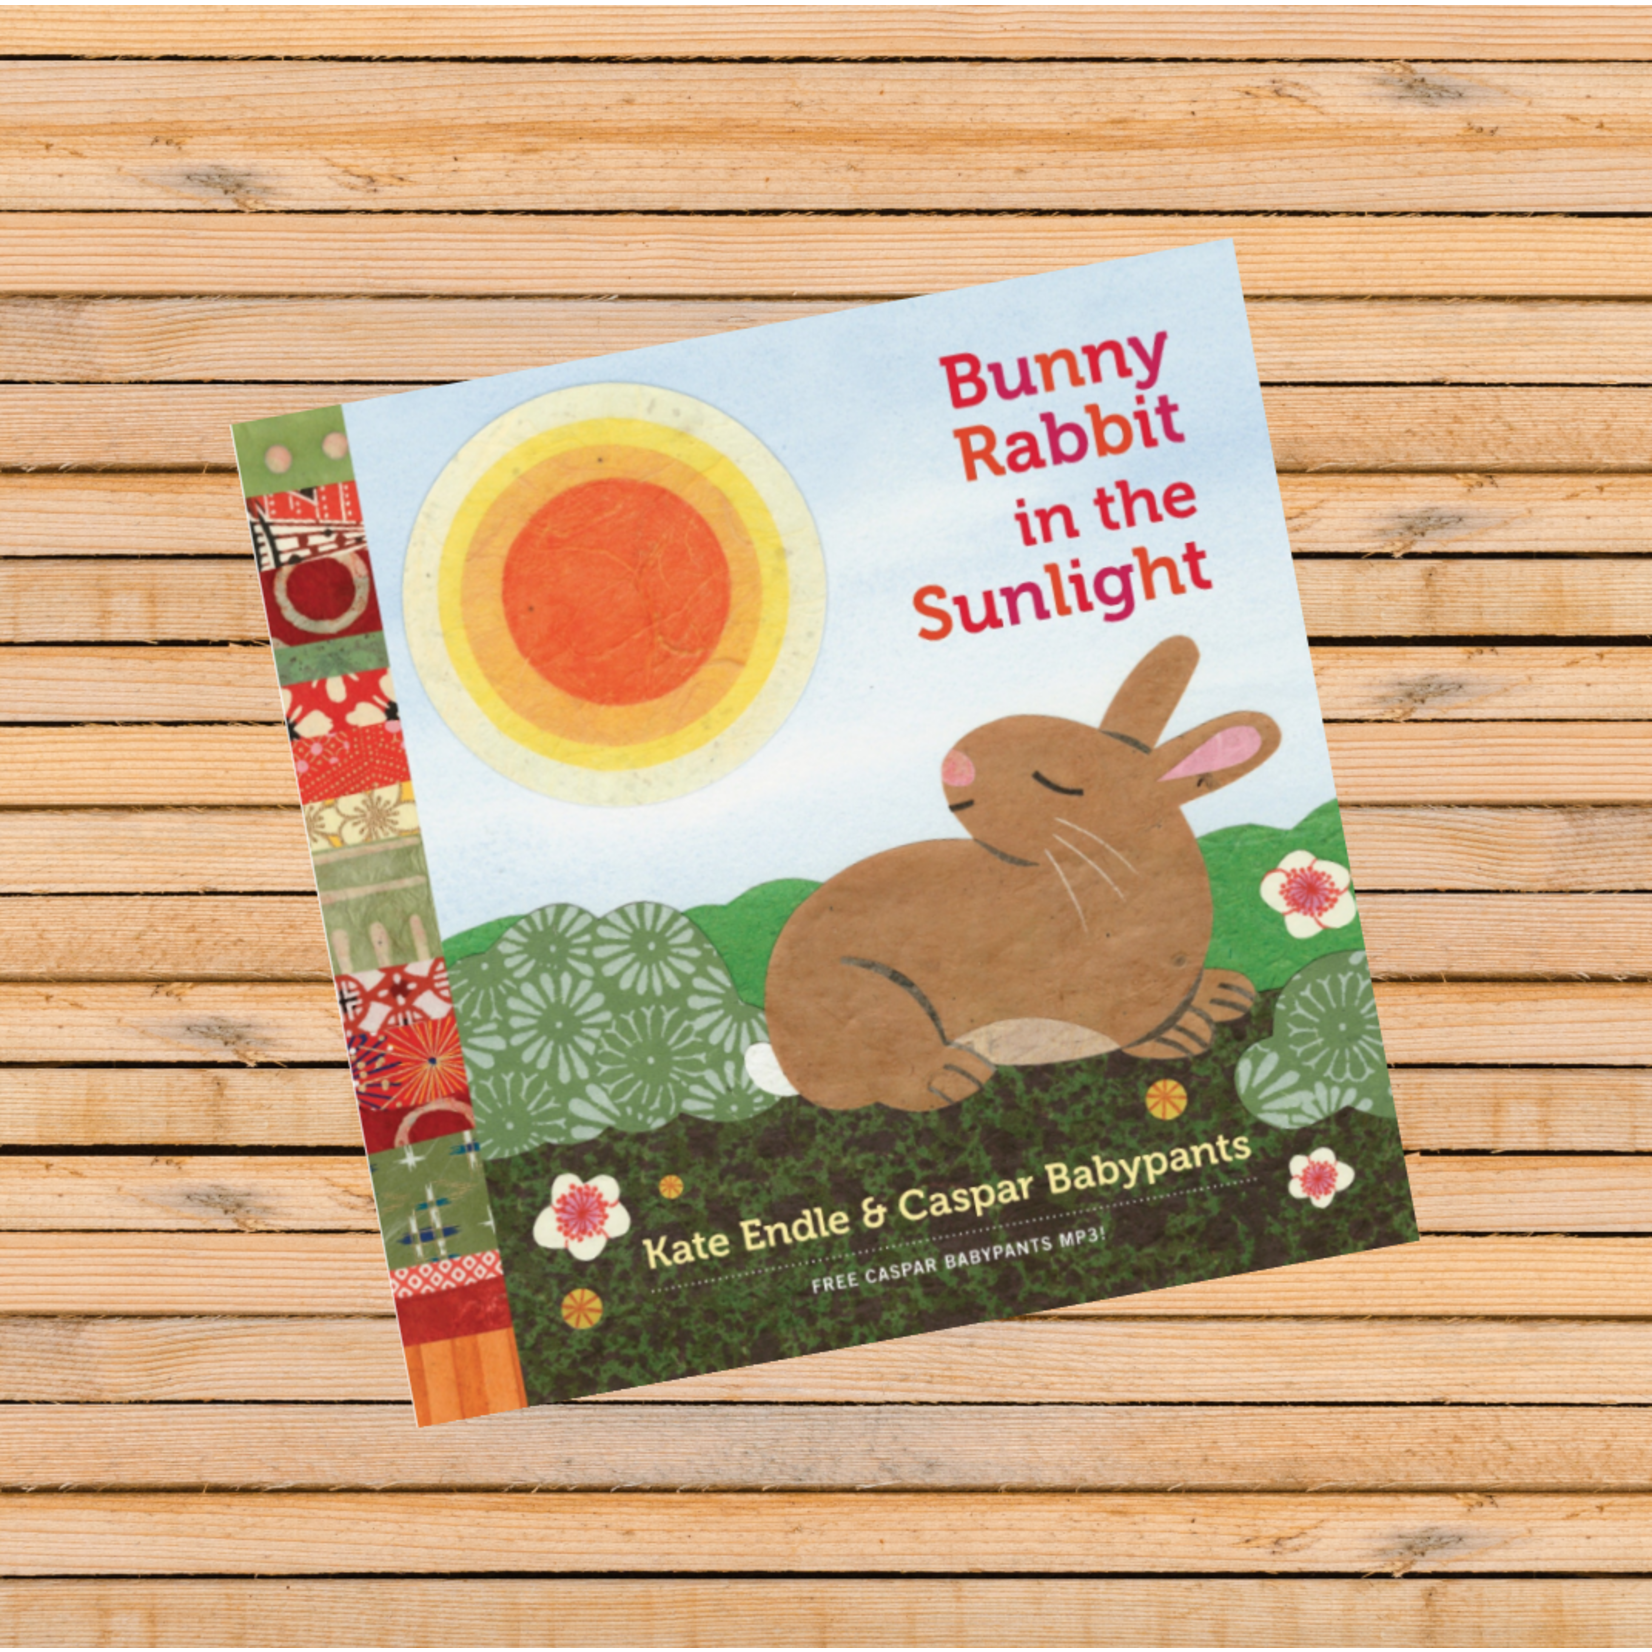 Kate Endle Bunny Rabbit in the Sunlight Book - Kate Endle